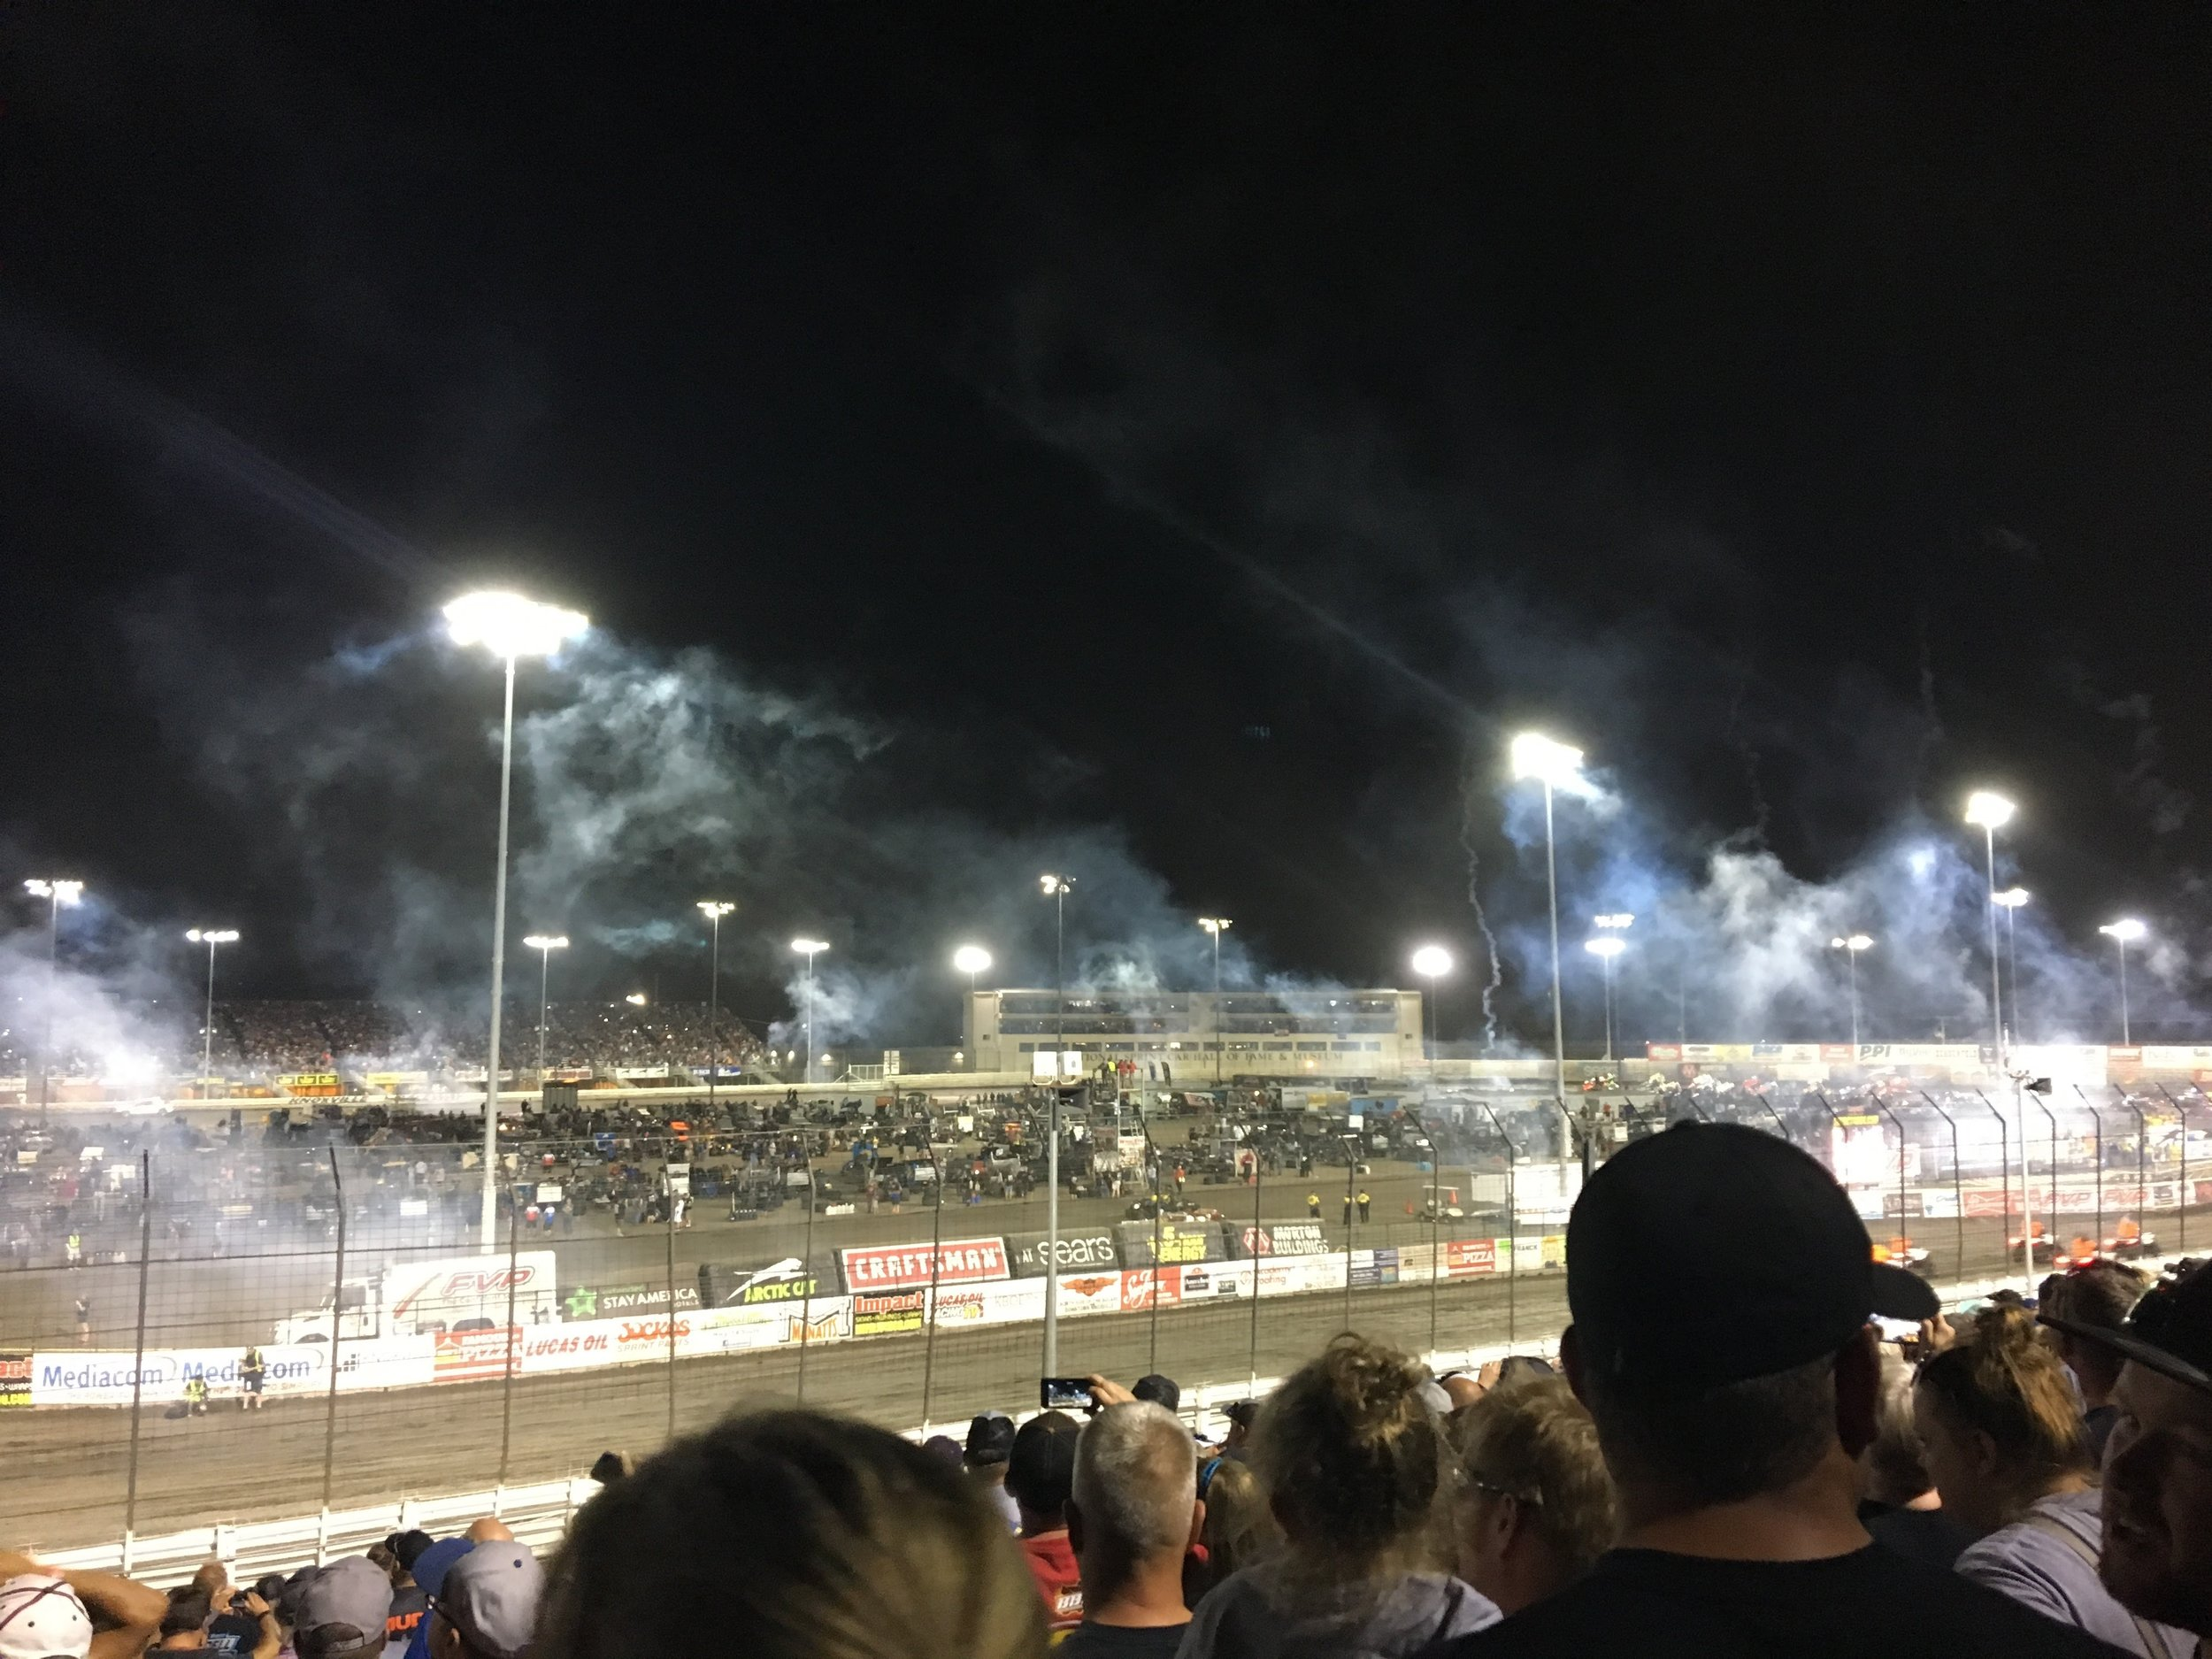 Gotta love Knoxville... Let's be honest, while my fam is watching the races I'm probably just sitting there looking for more look-a-likes, and it's very entertaining. ;) -